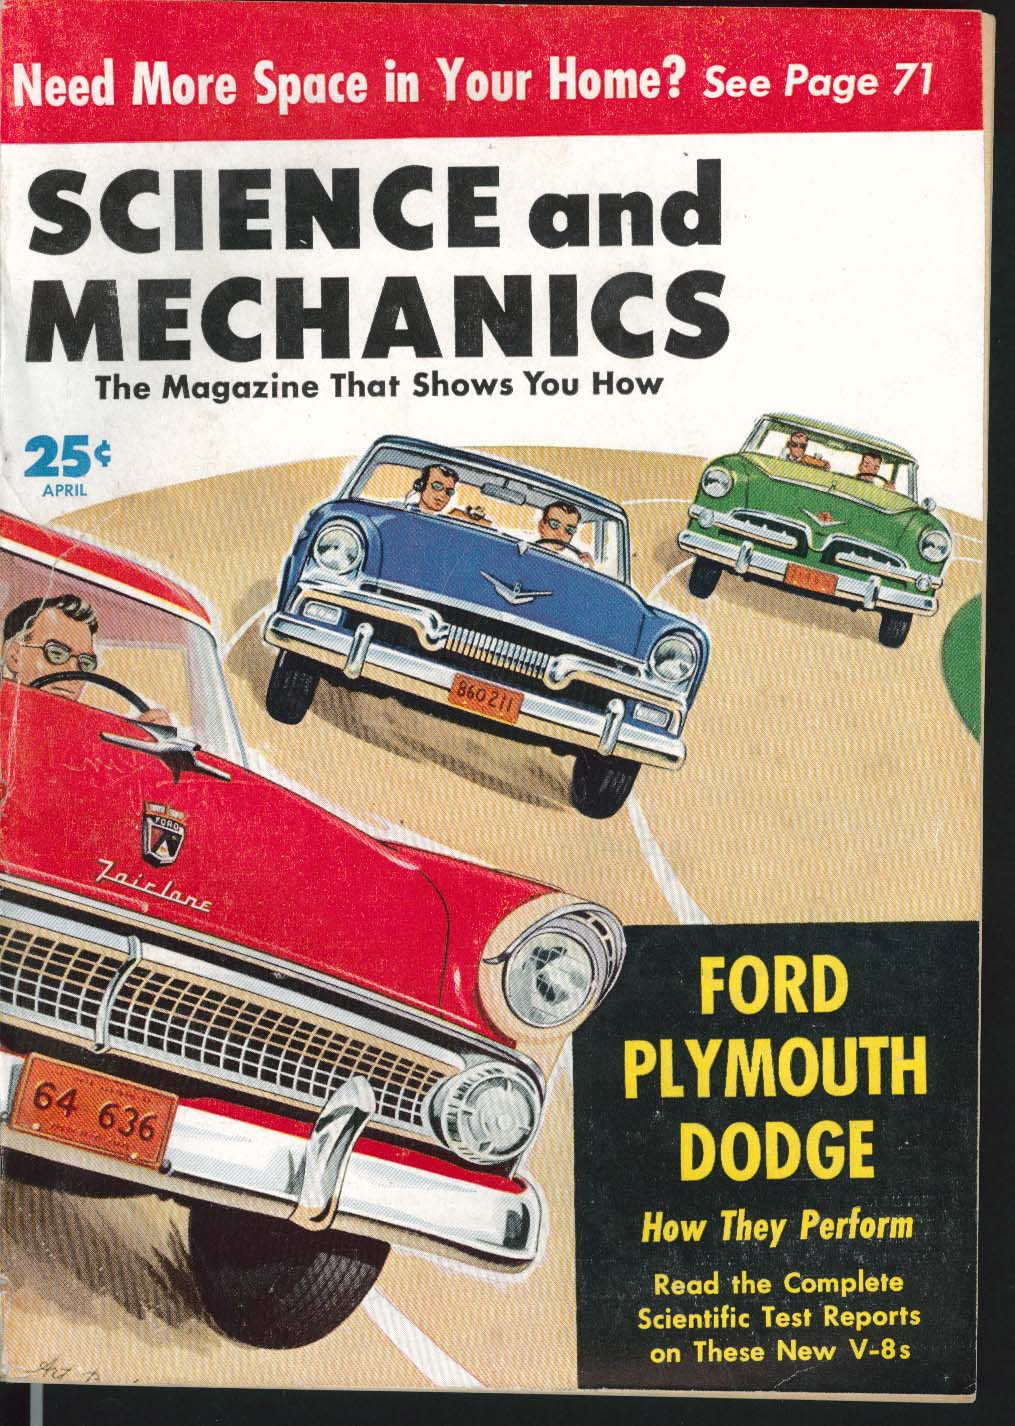 SCIENCE & MECHANICS Ford Plymouth Dodge V-8 road tests 4 1955